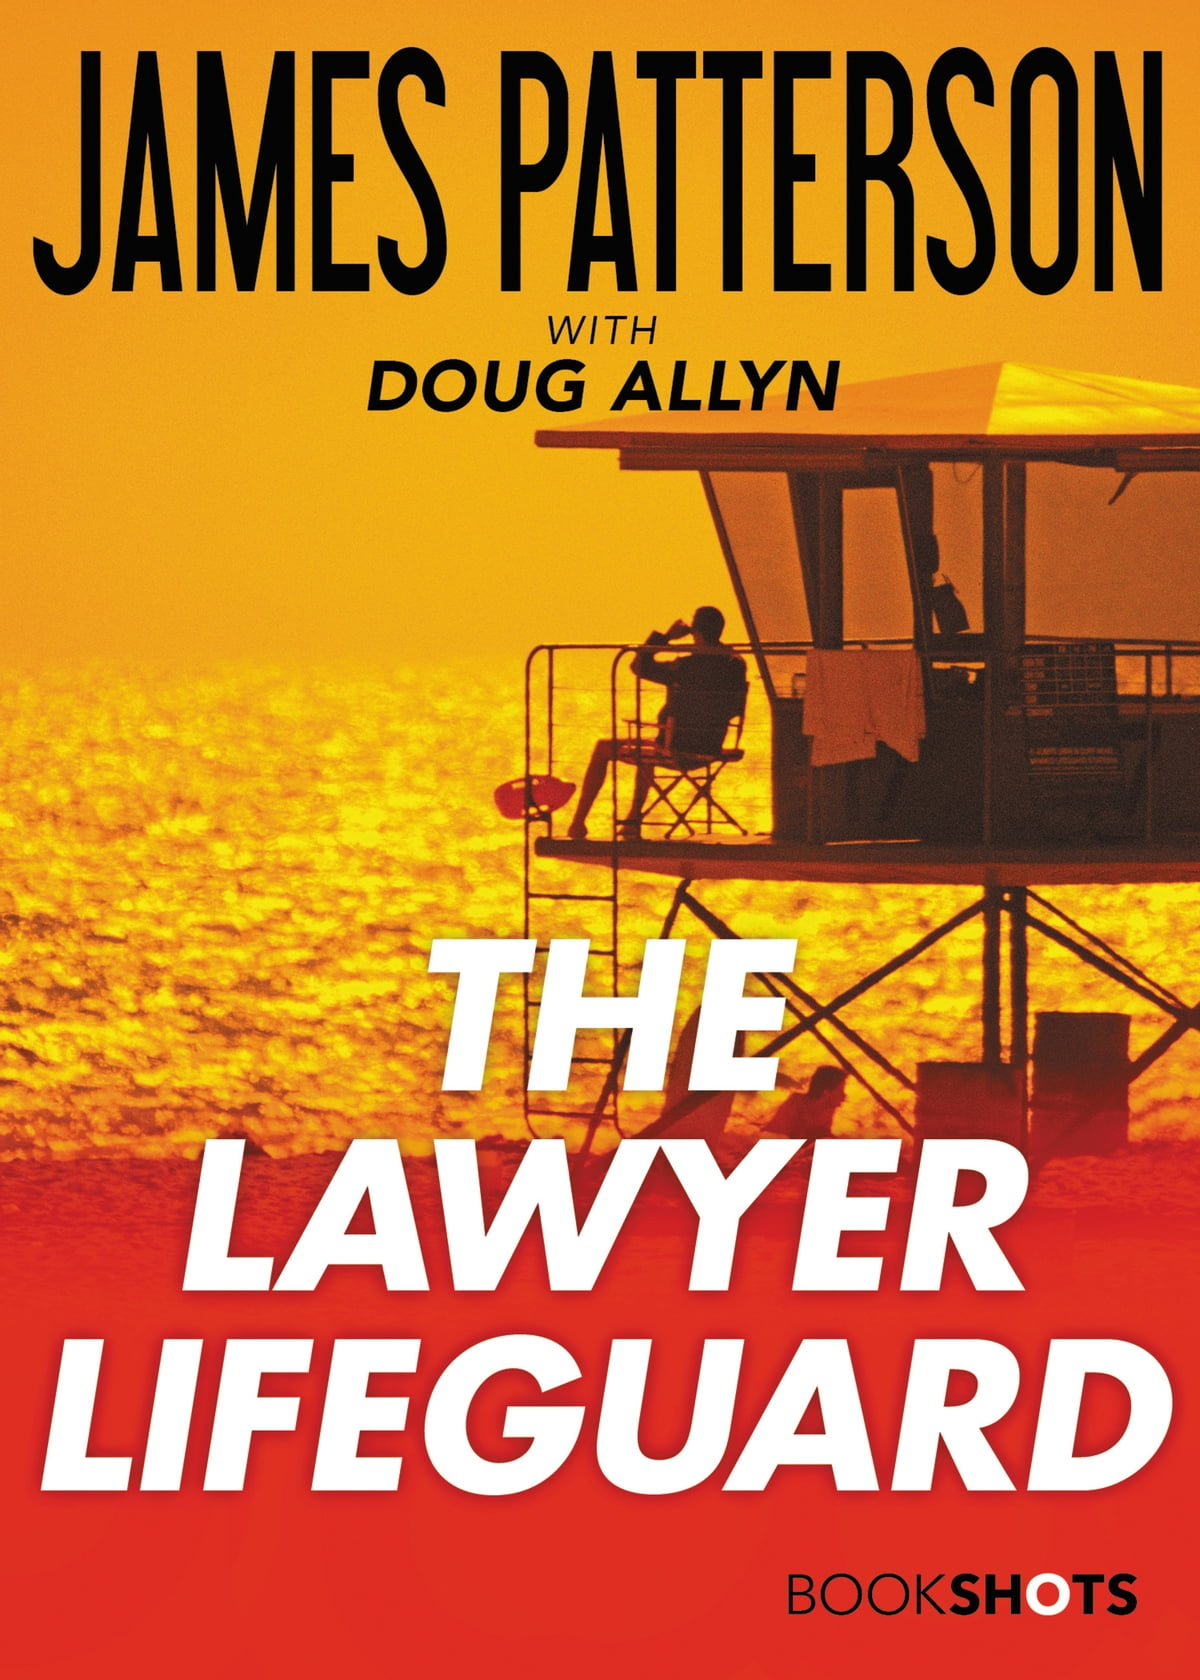 The Lawyer Lifeguard Ebook By James Patterson, Doug Allyn